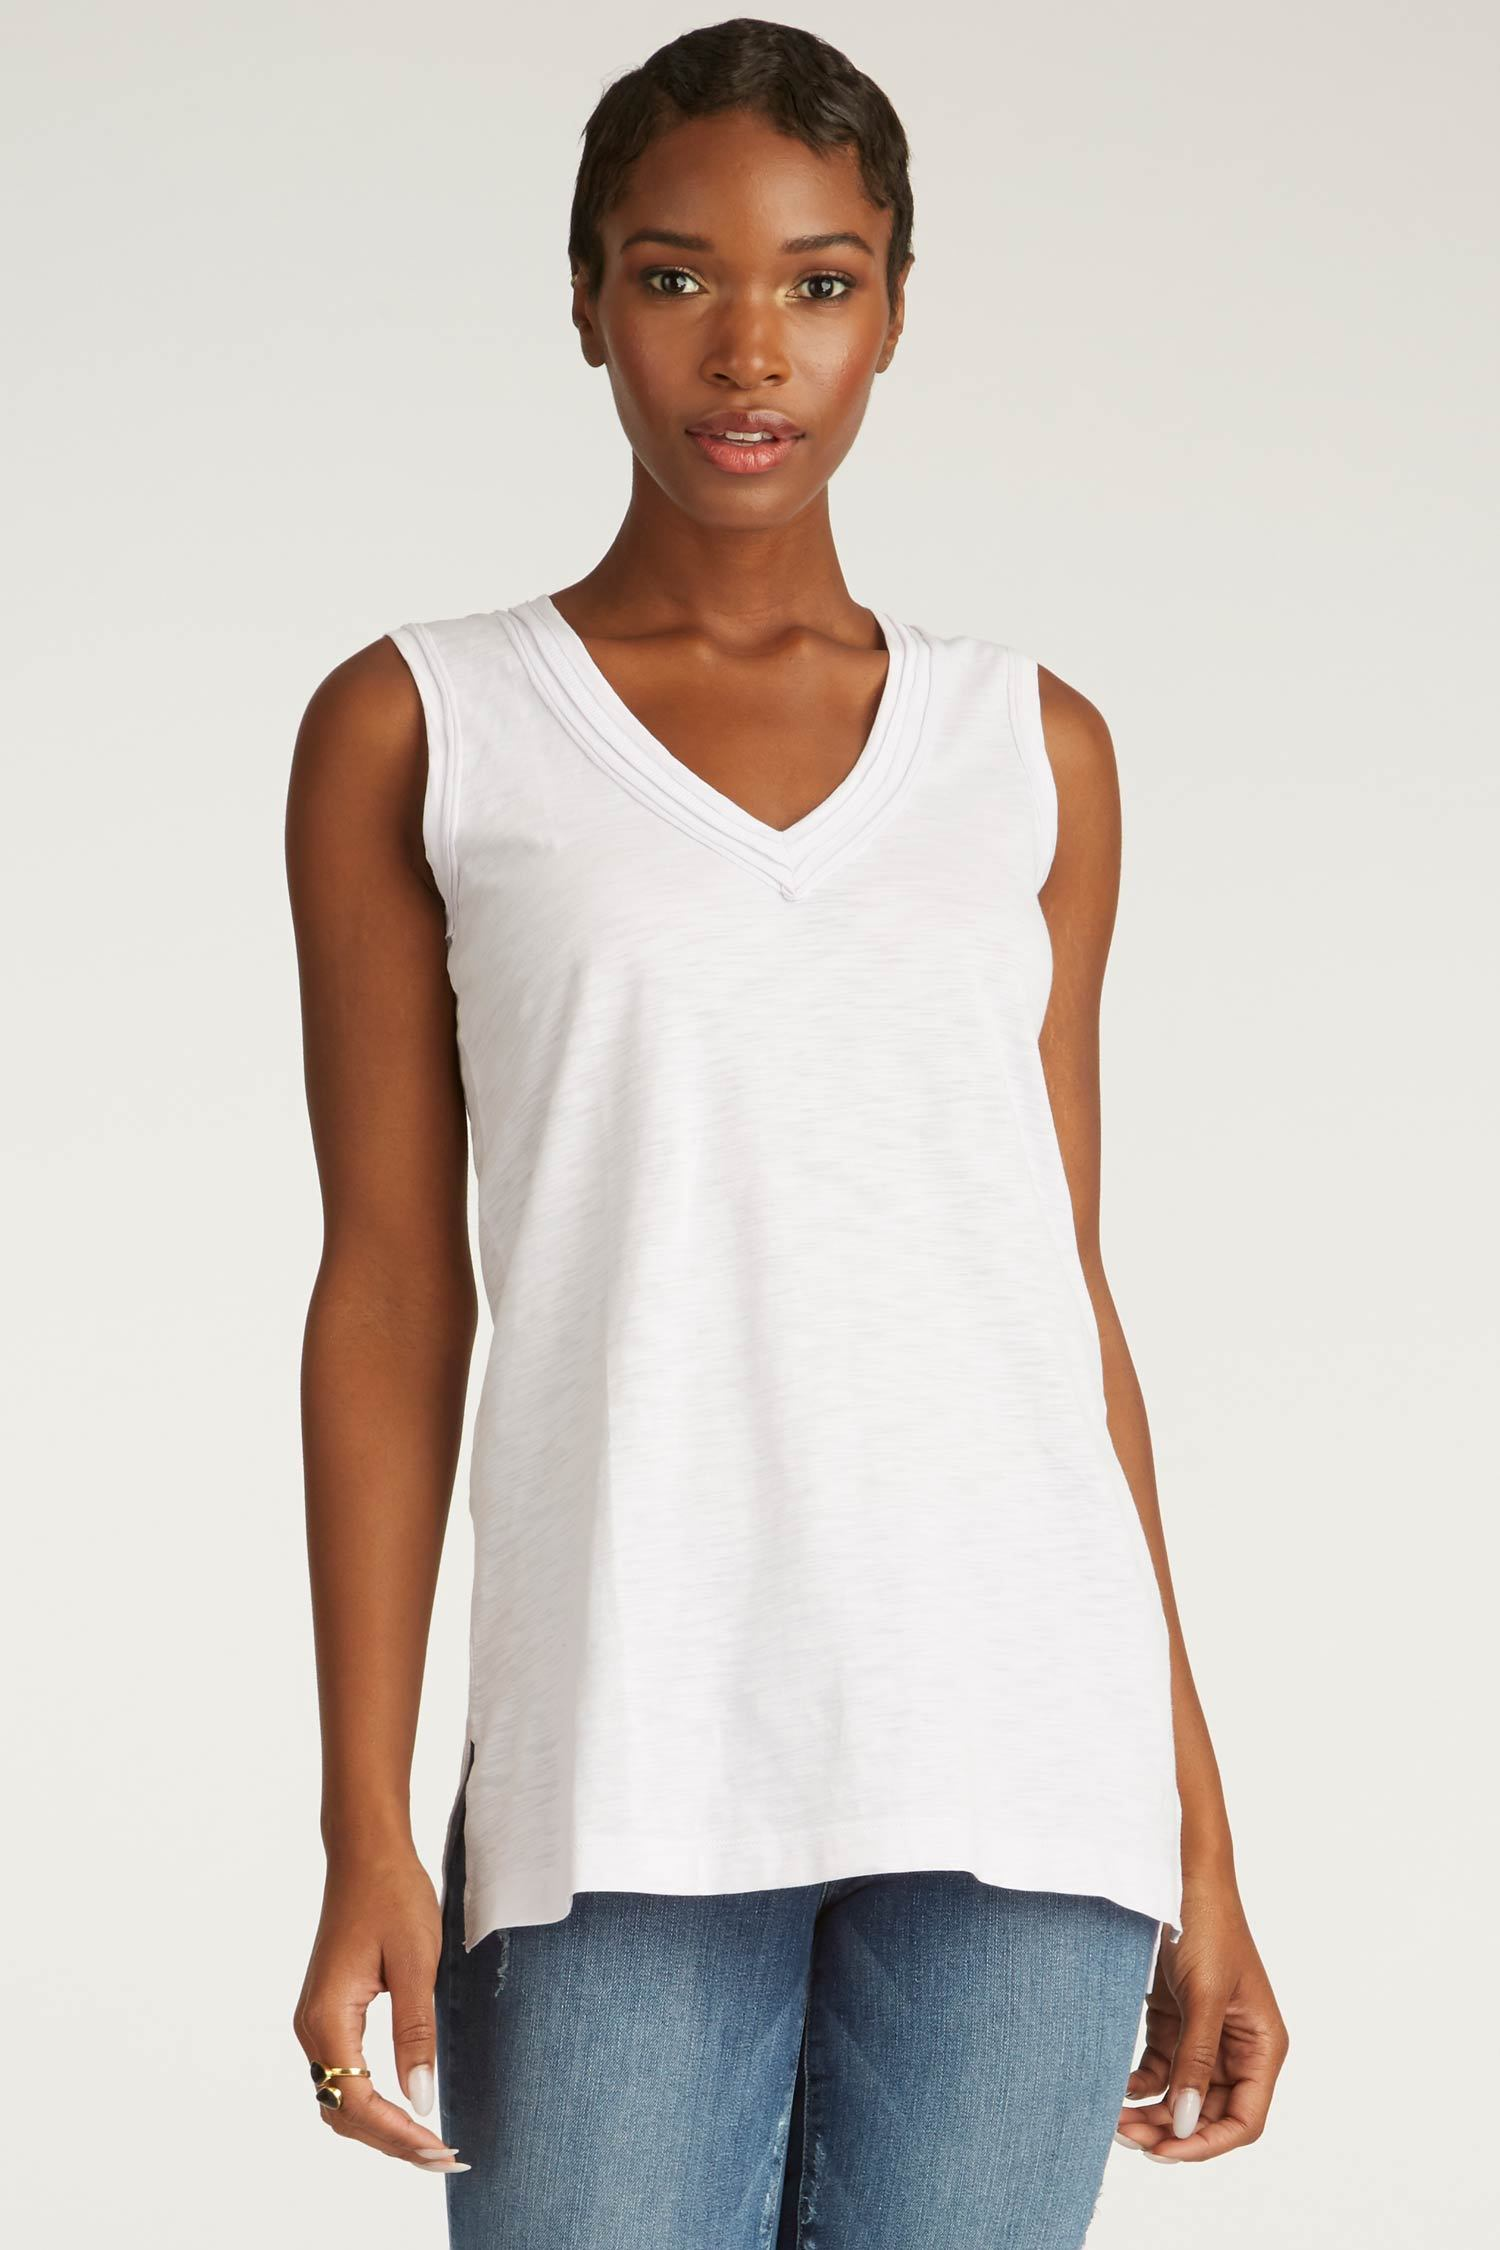 womens tank top white long v neck tee organic cotton clothing basics for women